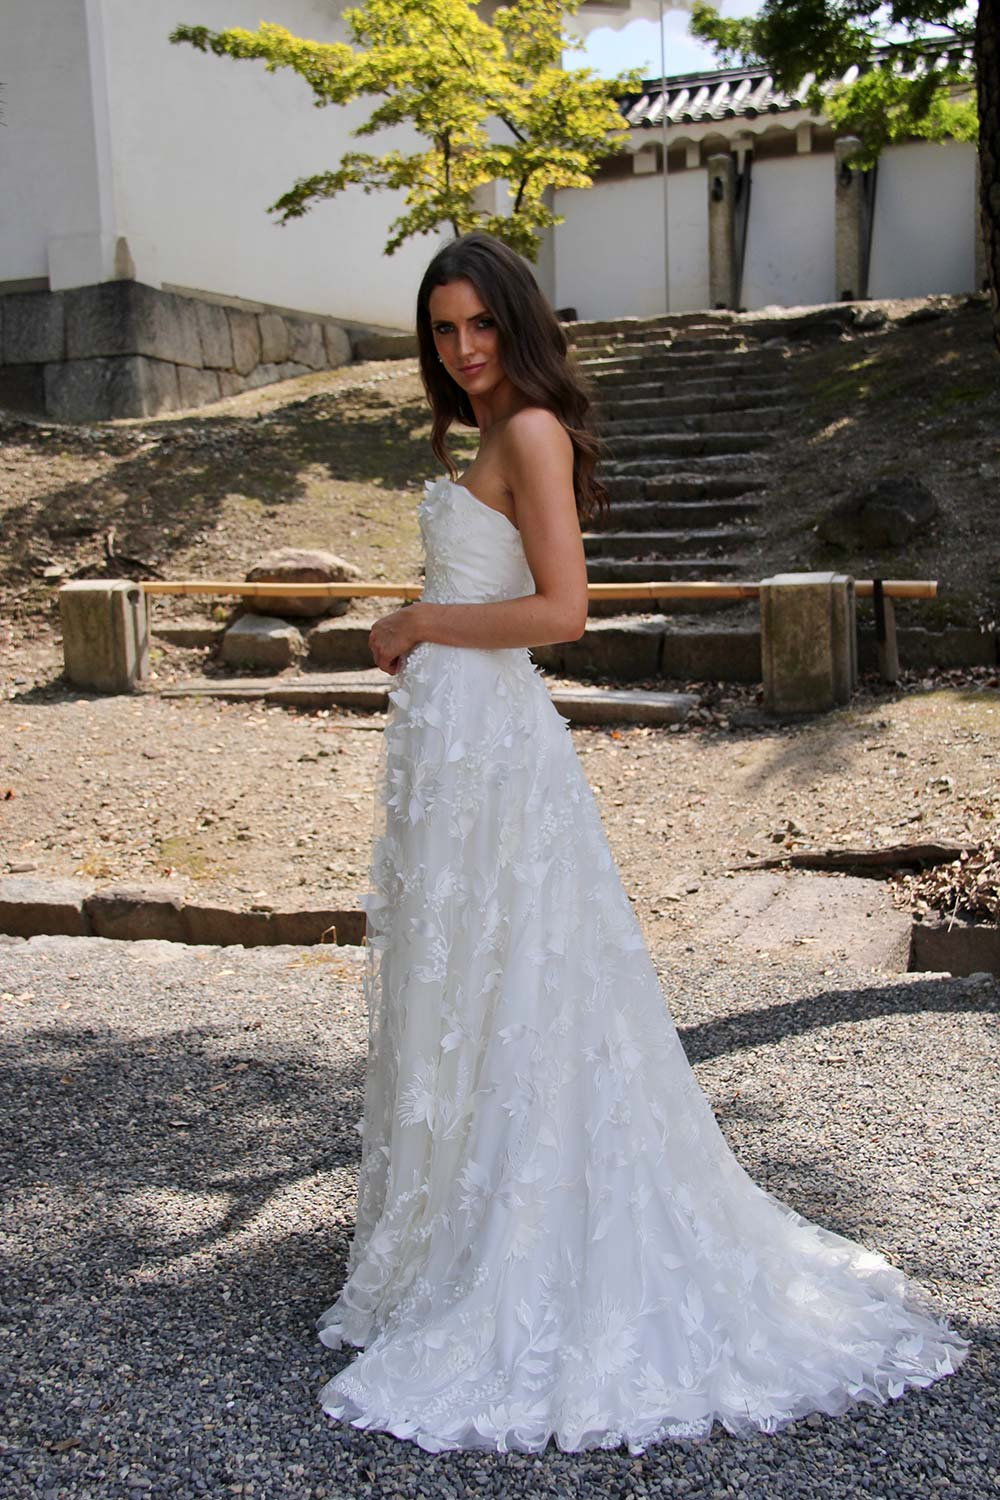 Female model wearing Vinka Design An Oriental Affair Wedding Dress. In sunlit garden the side detail of a boned fitted strapless bodice and leaf lace on a tulle base